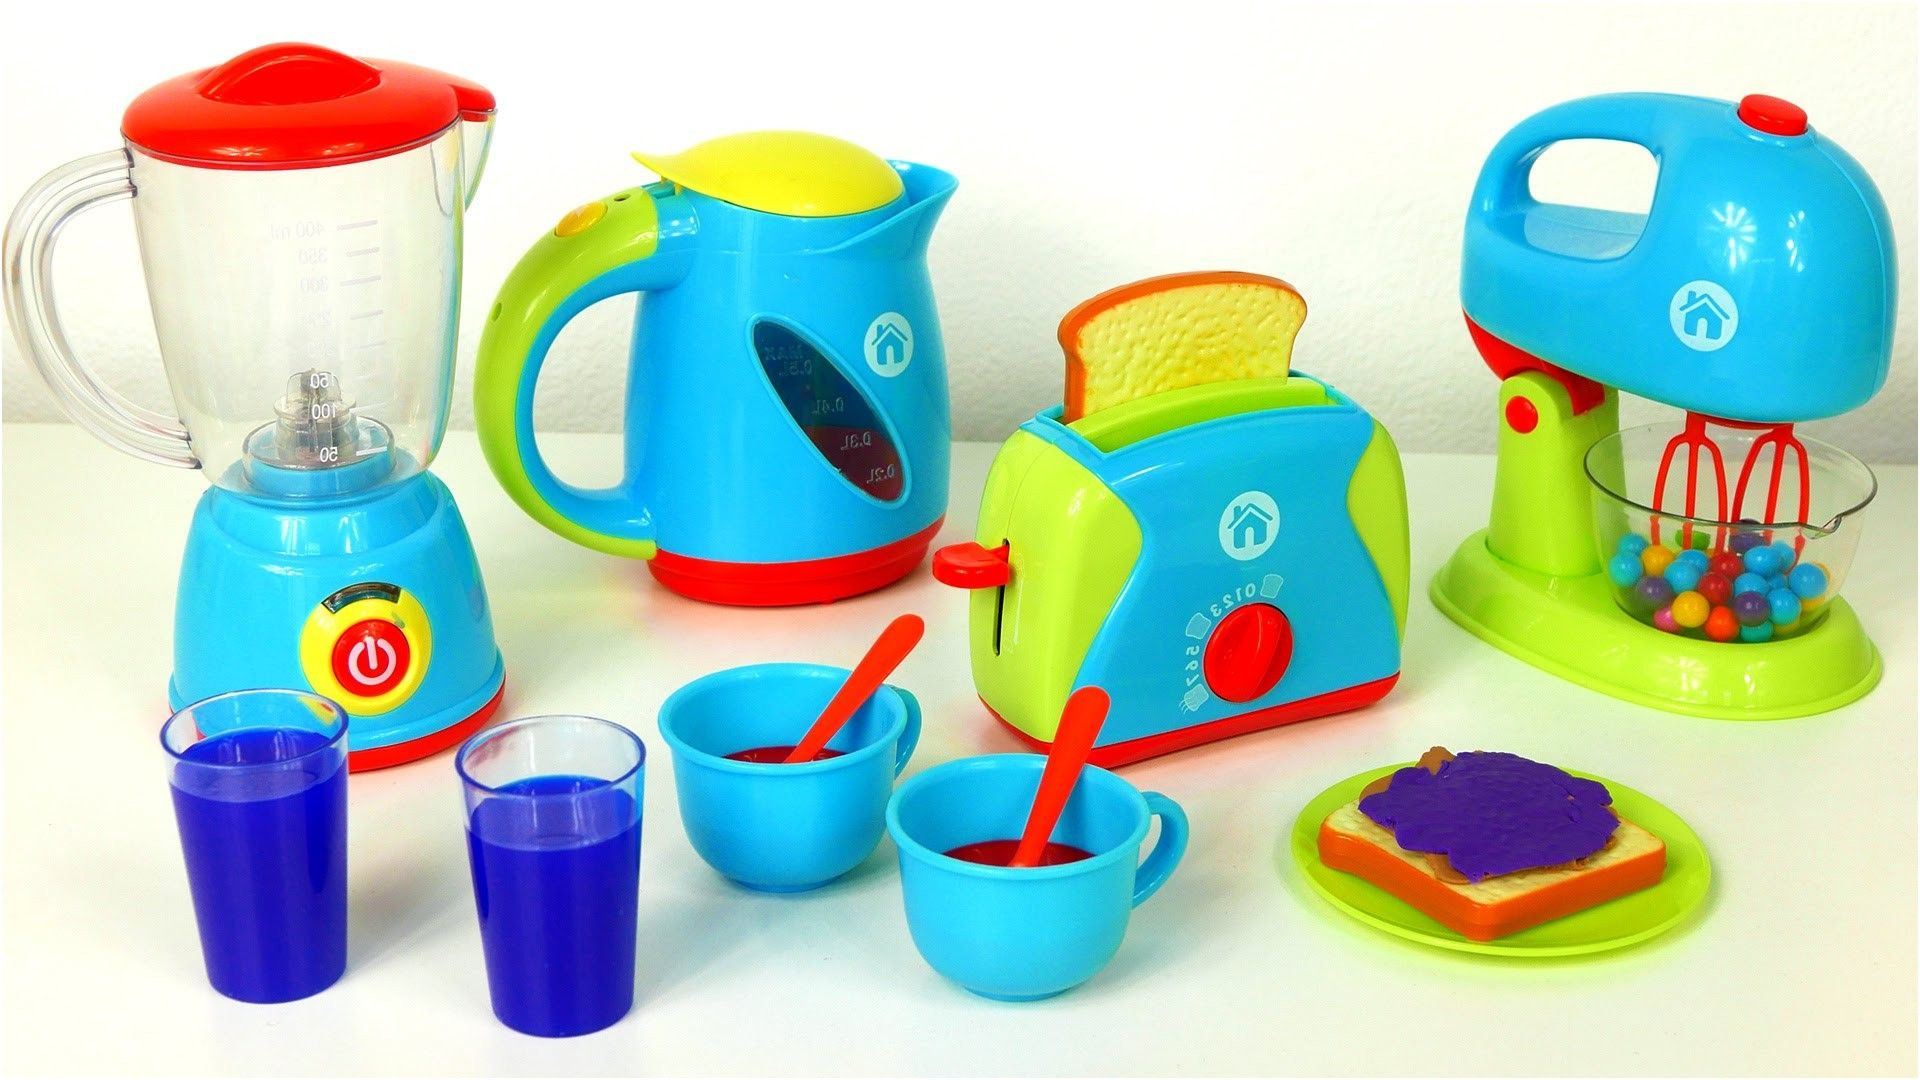 Just Like Home Toy Set : Just like home kitchen appliance set playset blender mixer toaster